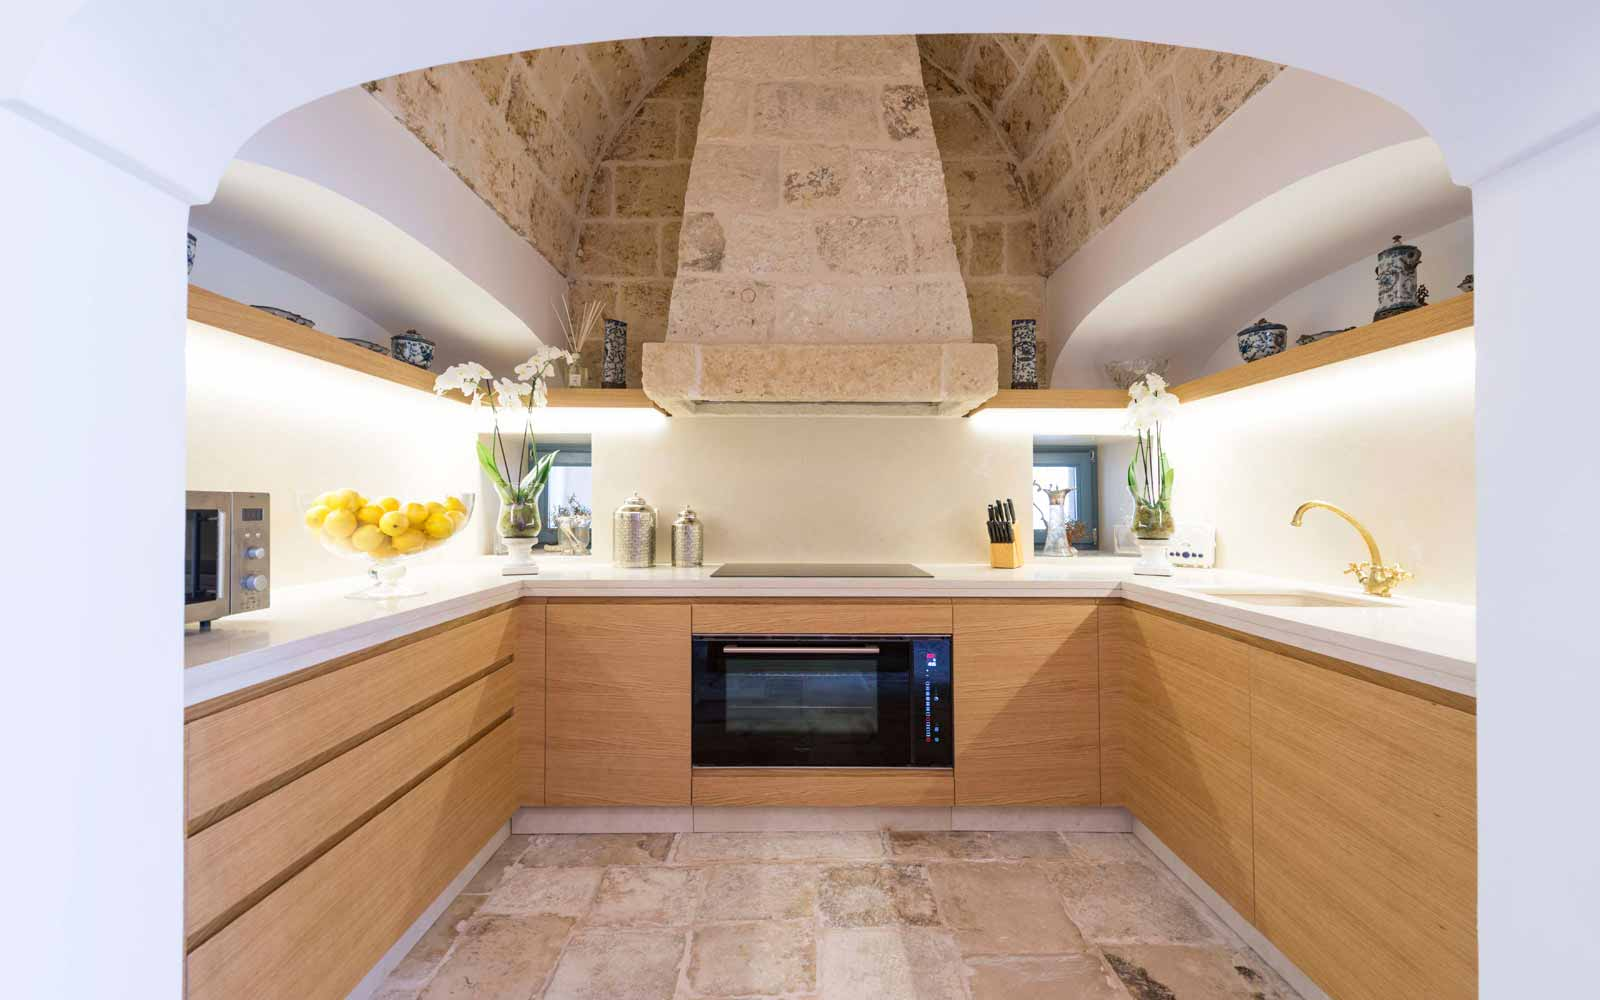 Kitchen at La Residenza of Masseria Pettolecchia